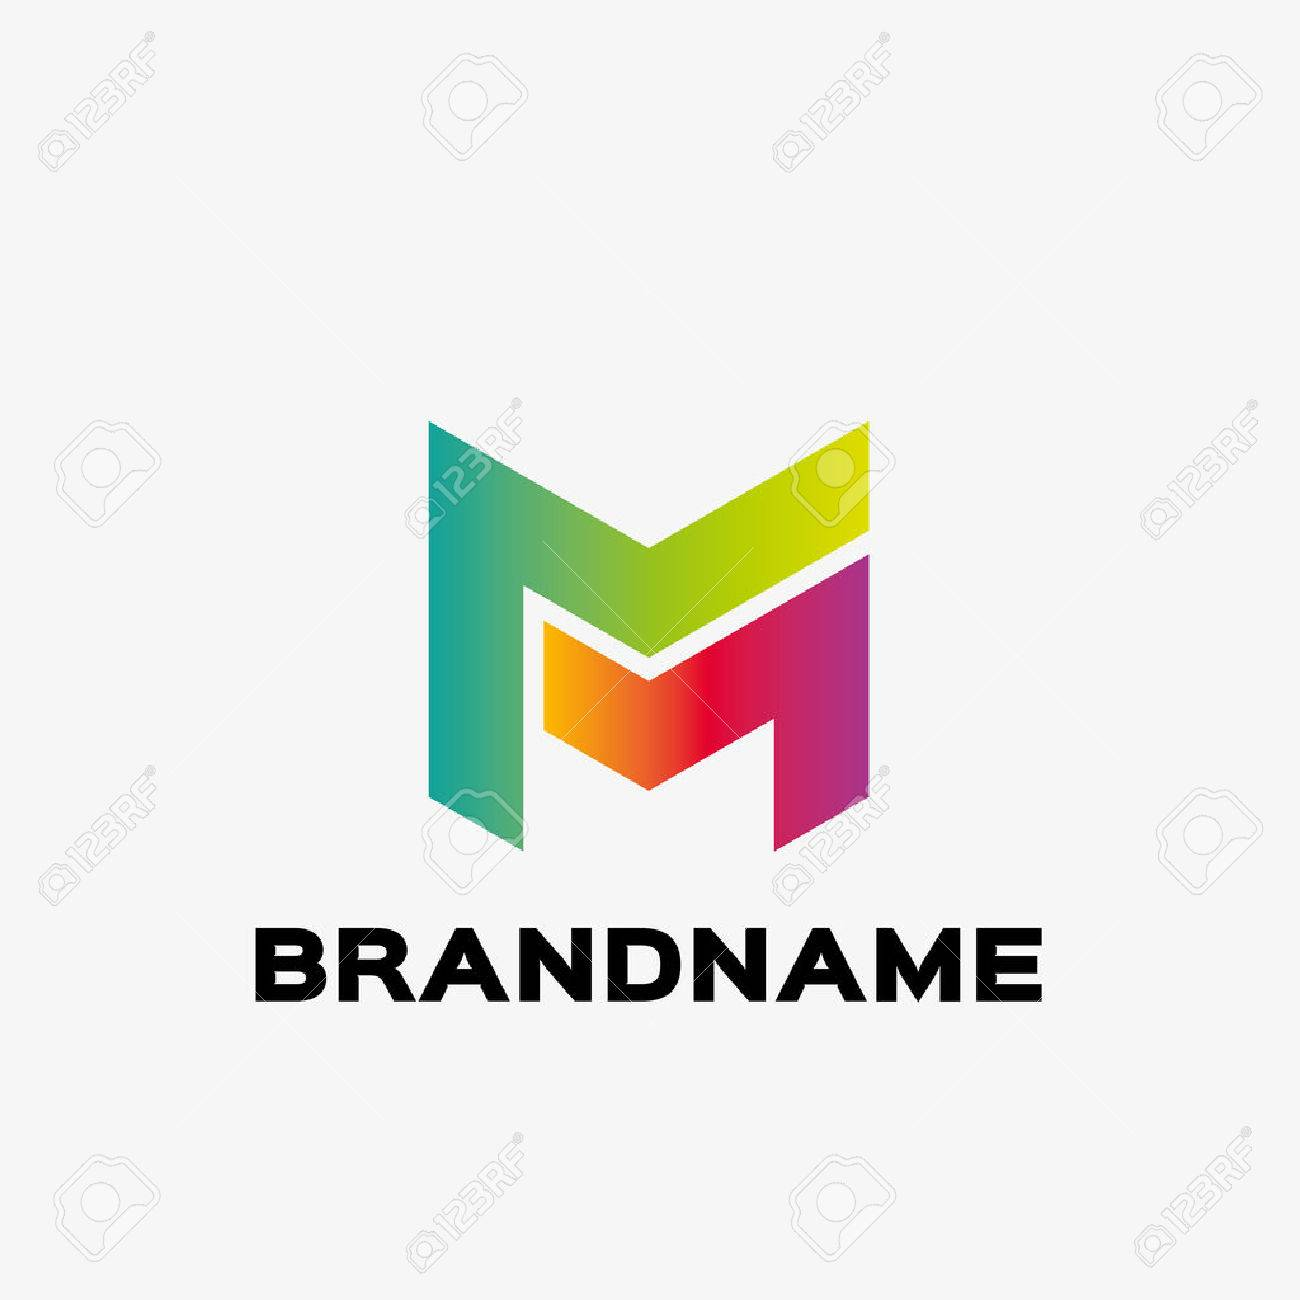 Abstract Letter M Logo Business Design Template Editable For Your